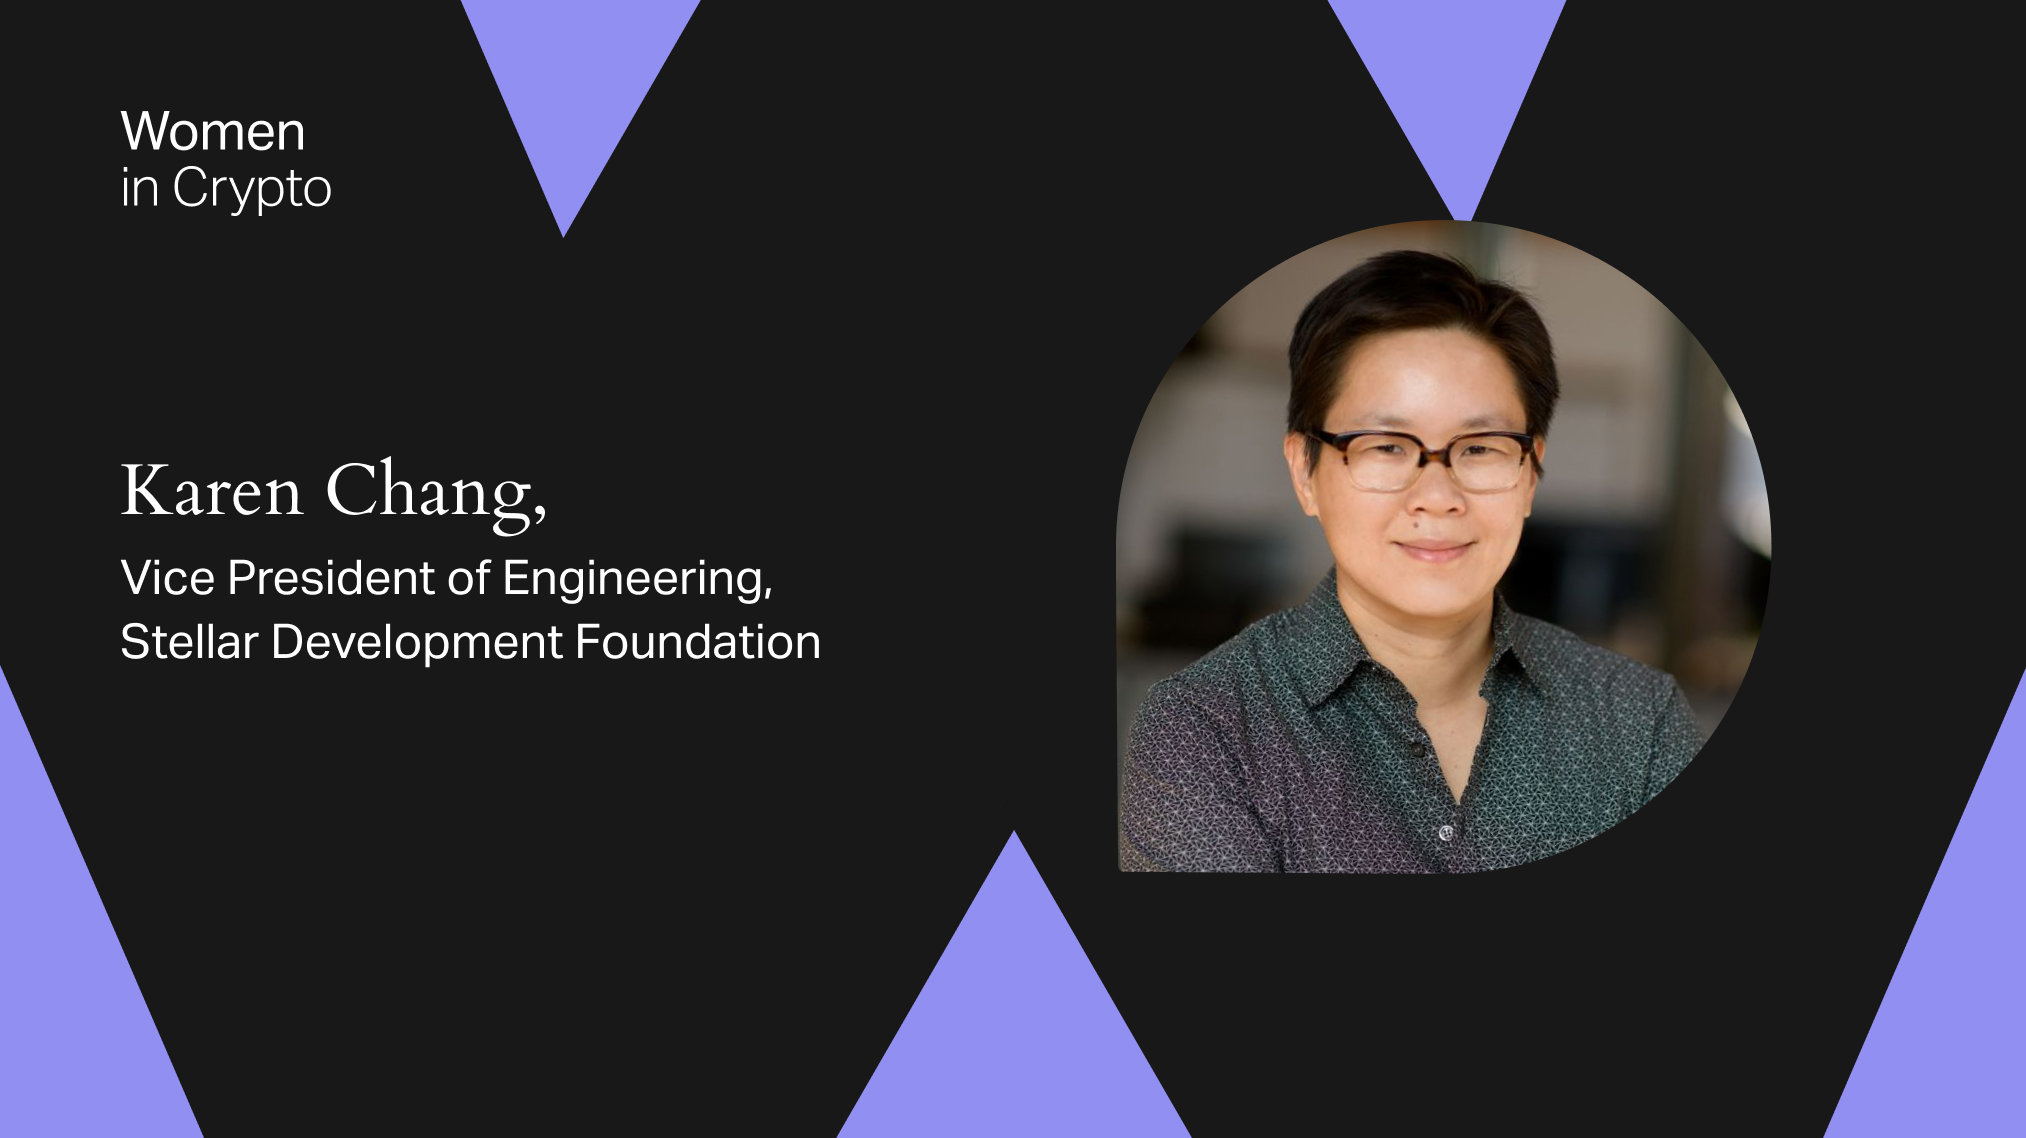 Women in Crypto: Karen Chang, VP of Engineering at Stellar Development Foundation